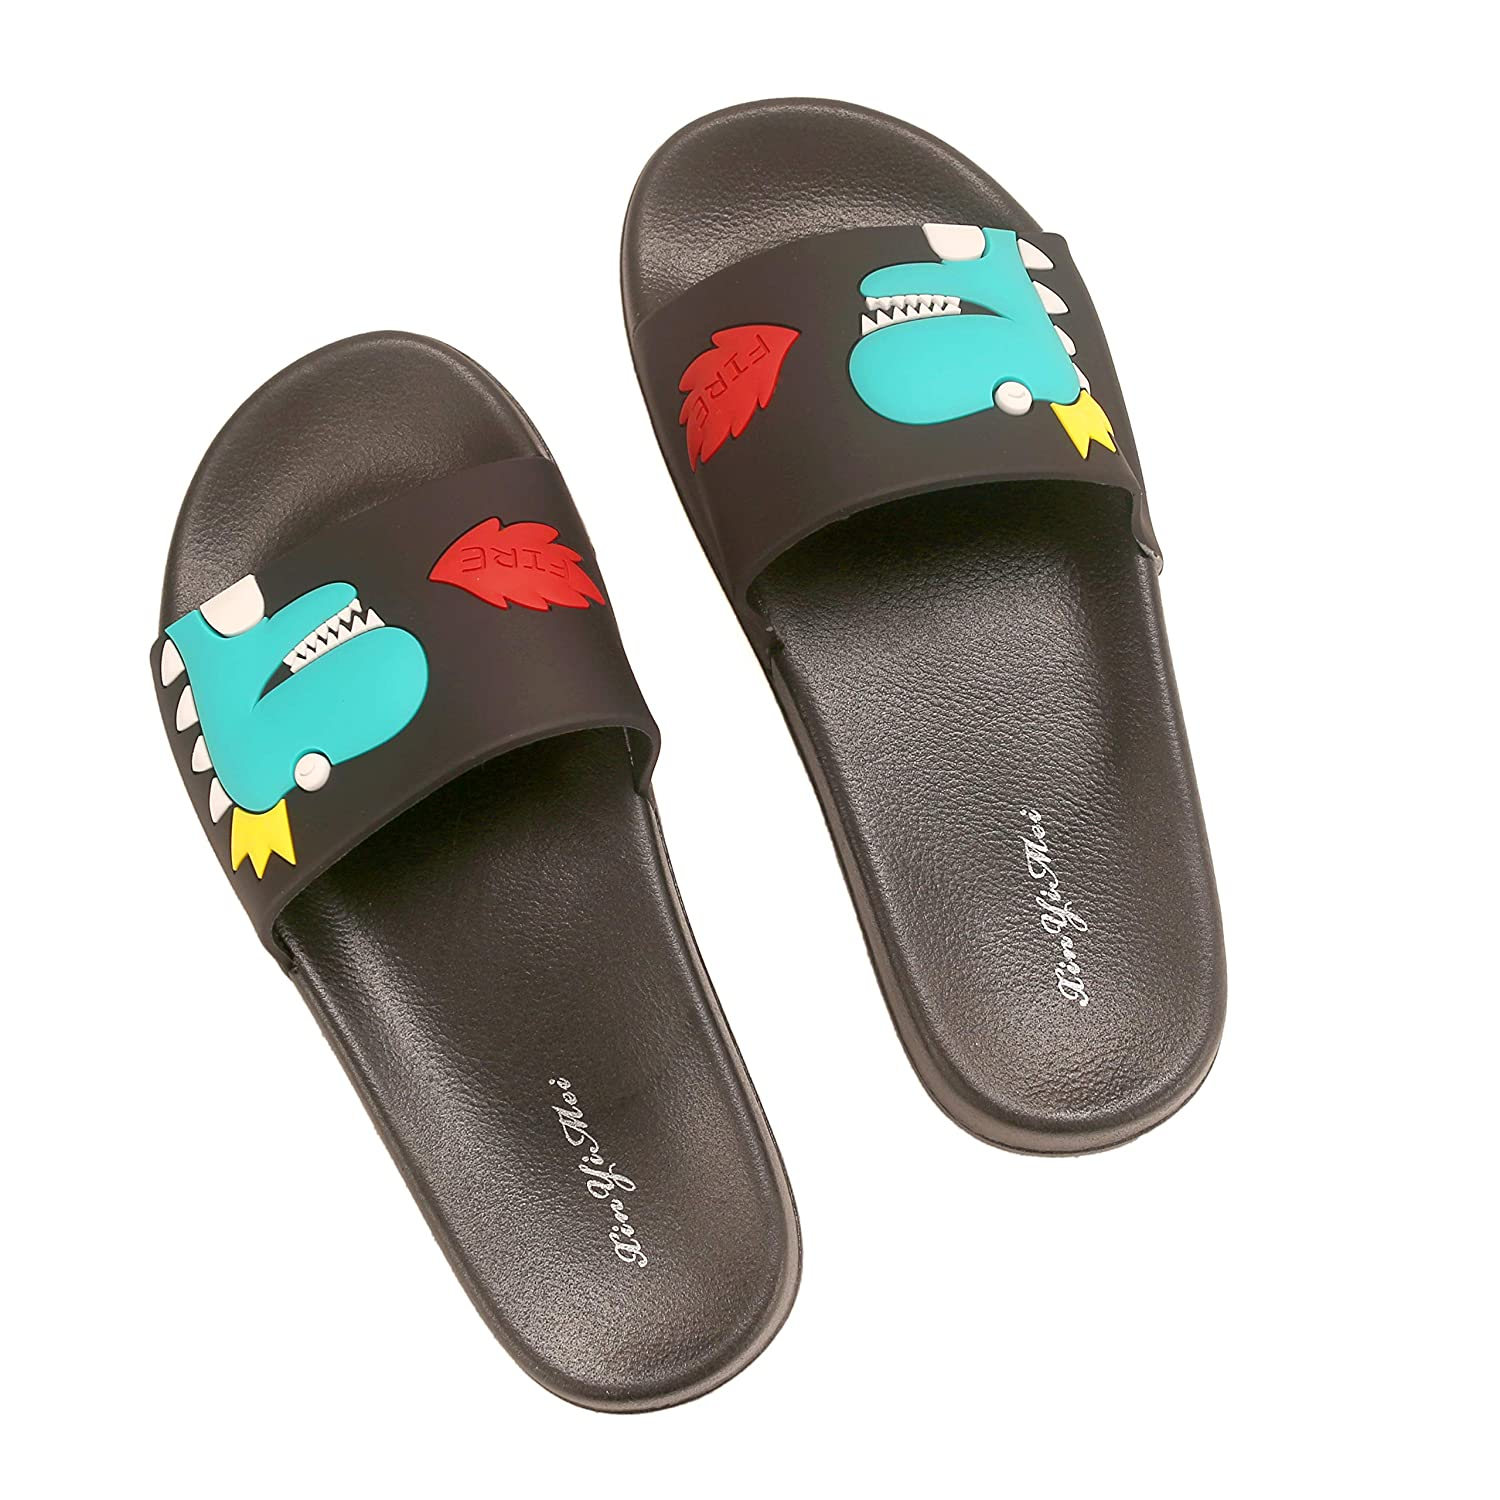 Anddyam Kids Family Household Sandals Anti-Slip Indoor Outdoor Home Slippers for Girls and Boys